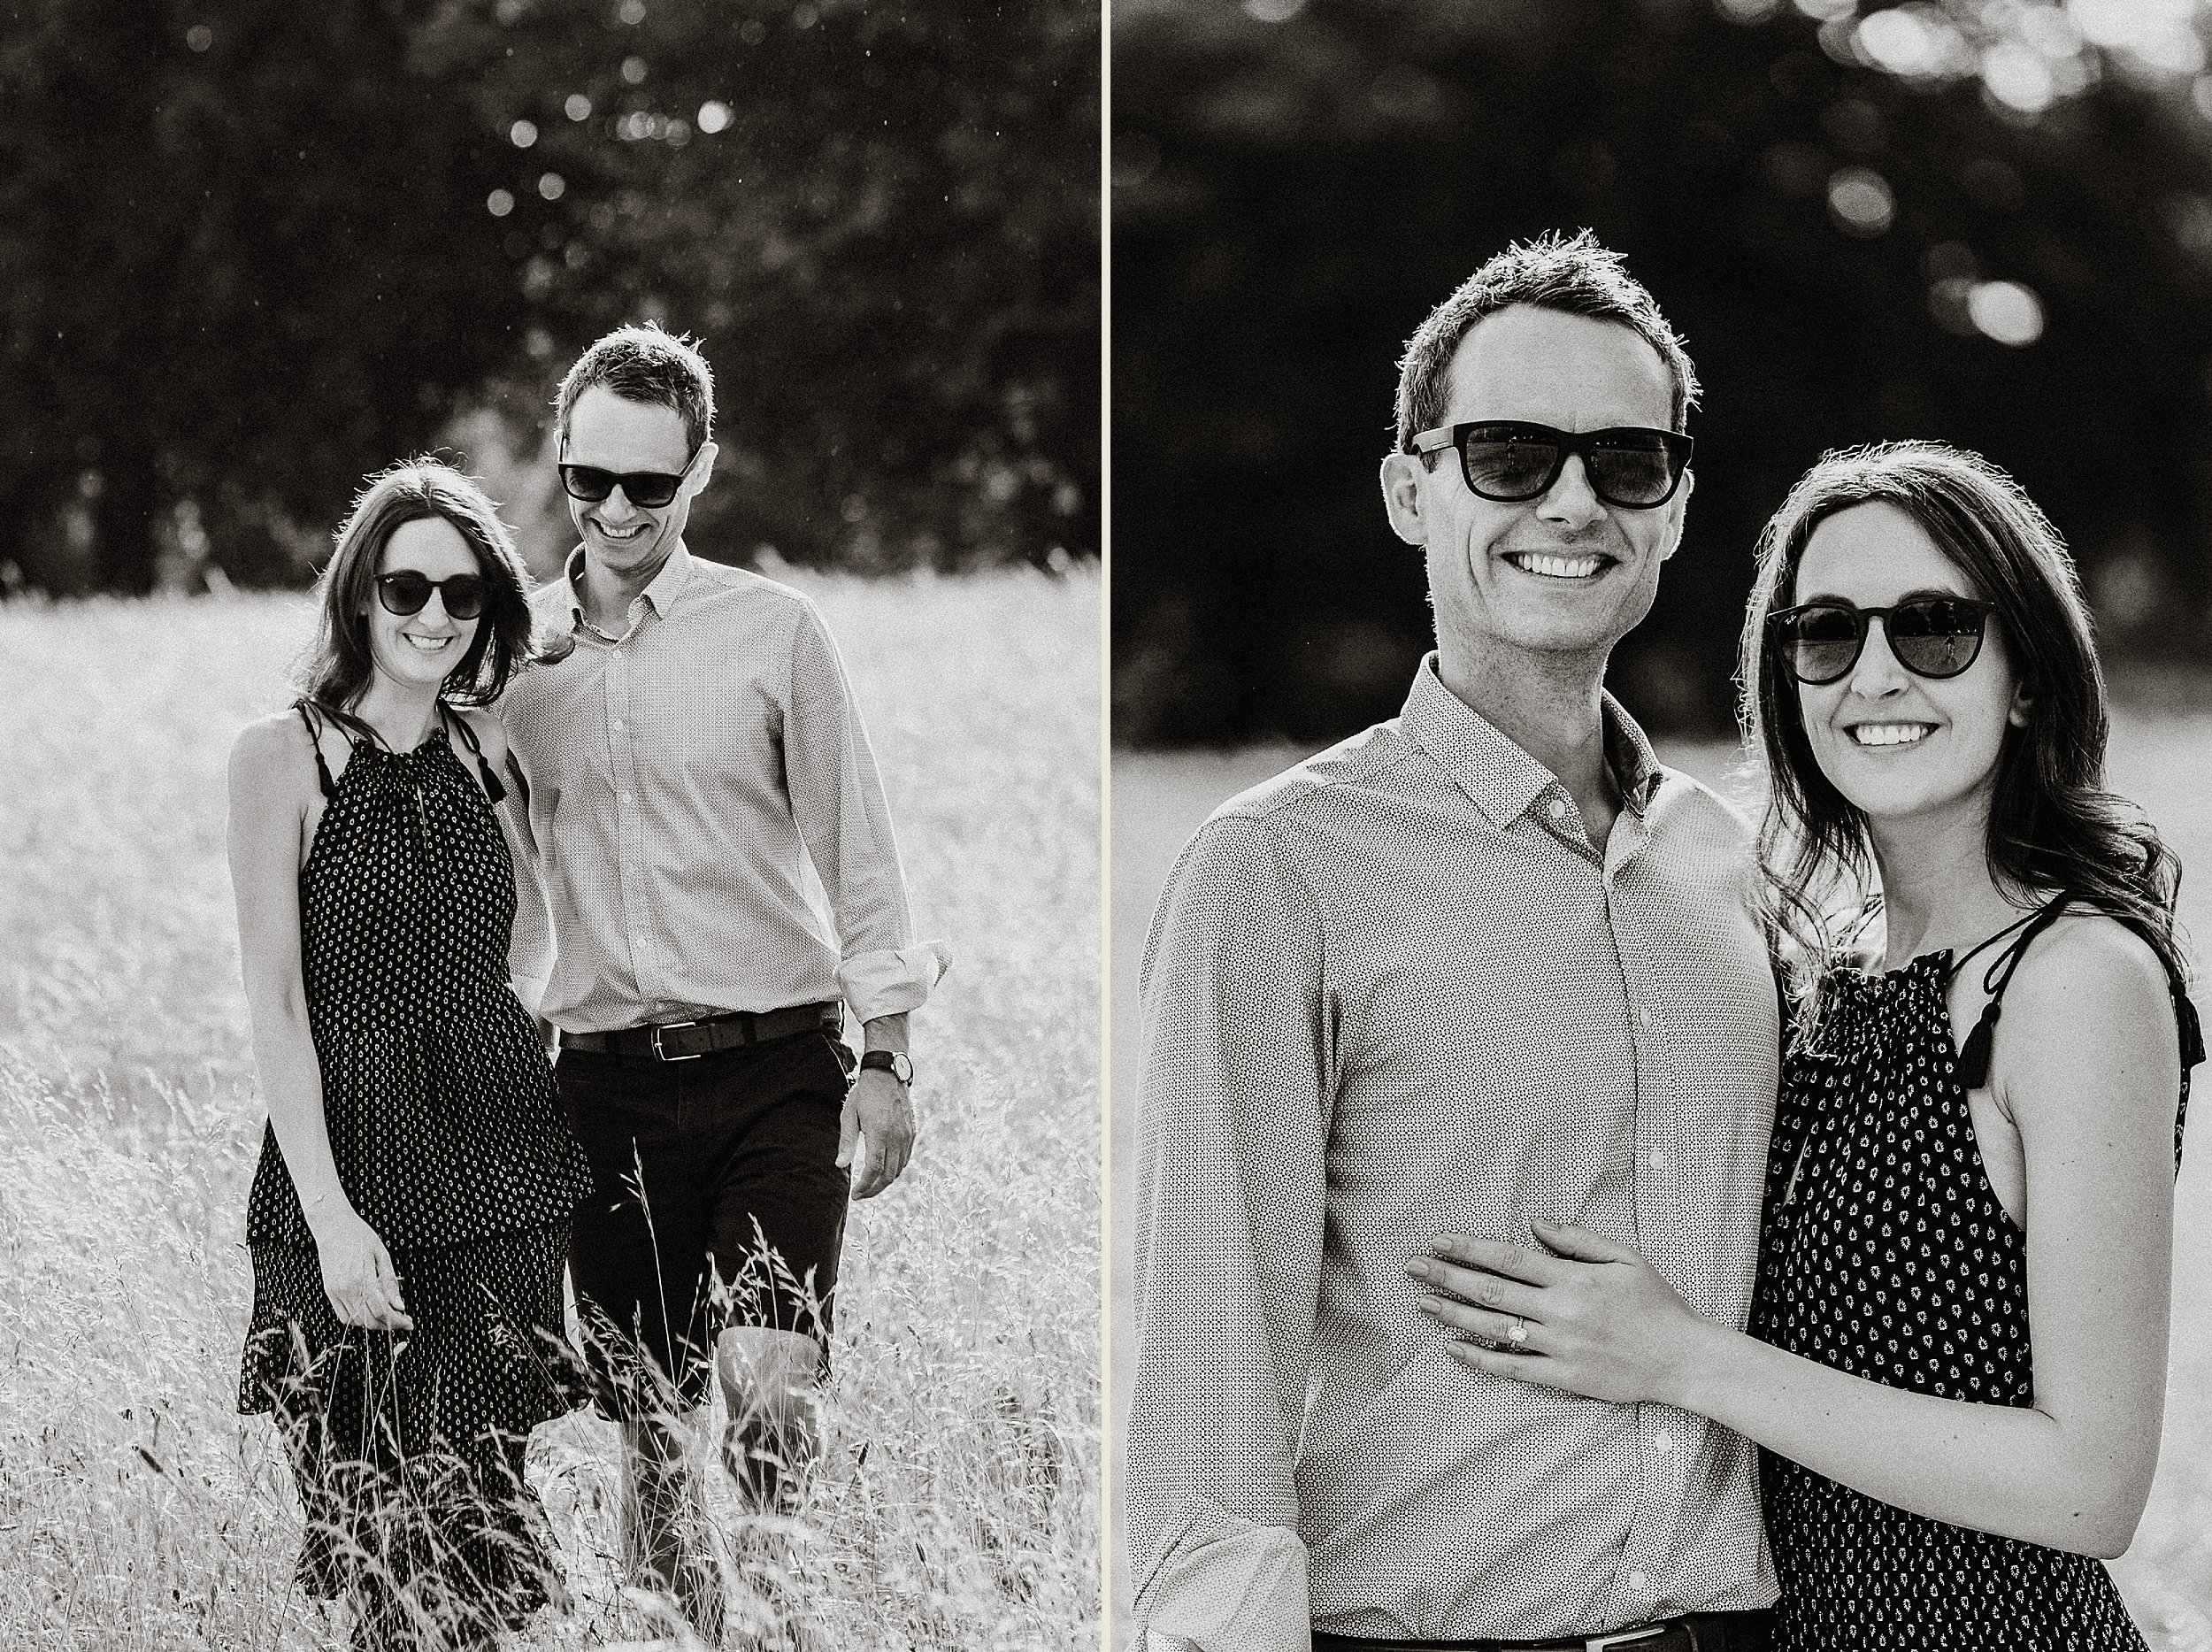 Engagement Shoot on Clifton Downs - Black and White portraits of the engaged couple